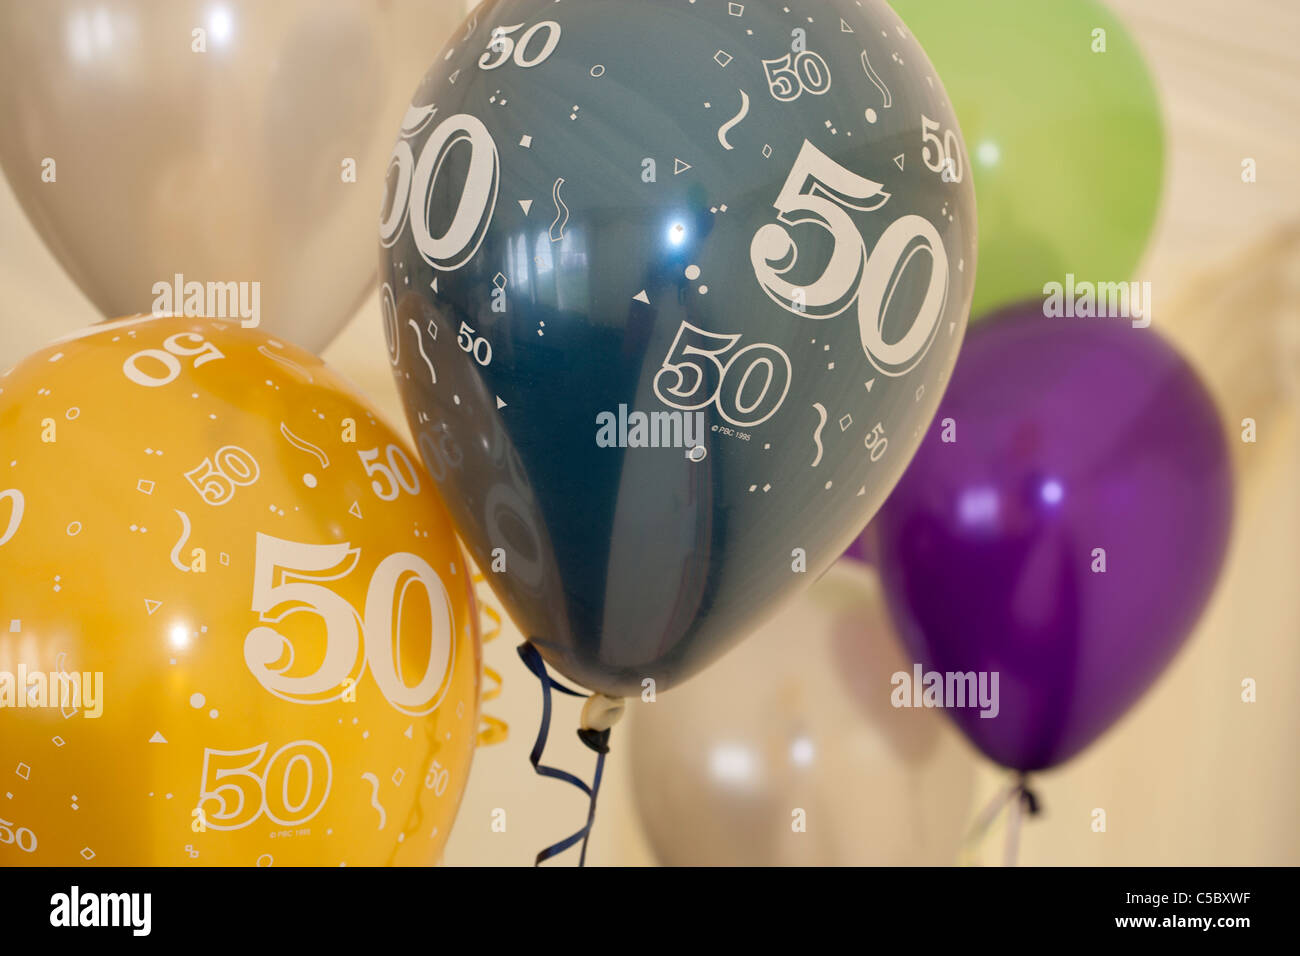 50th Birthday Balloons Stock Photo 37756587